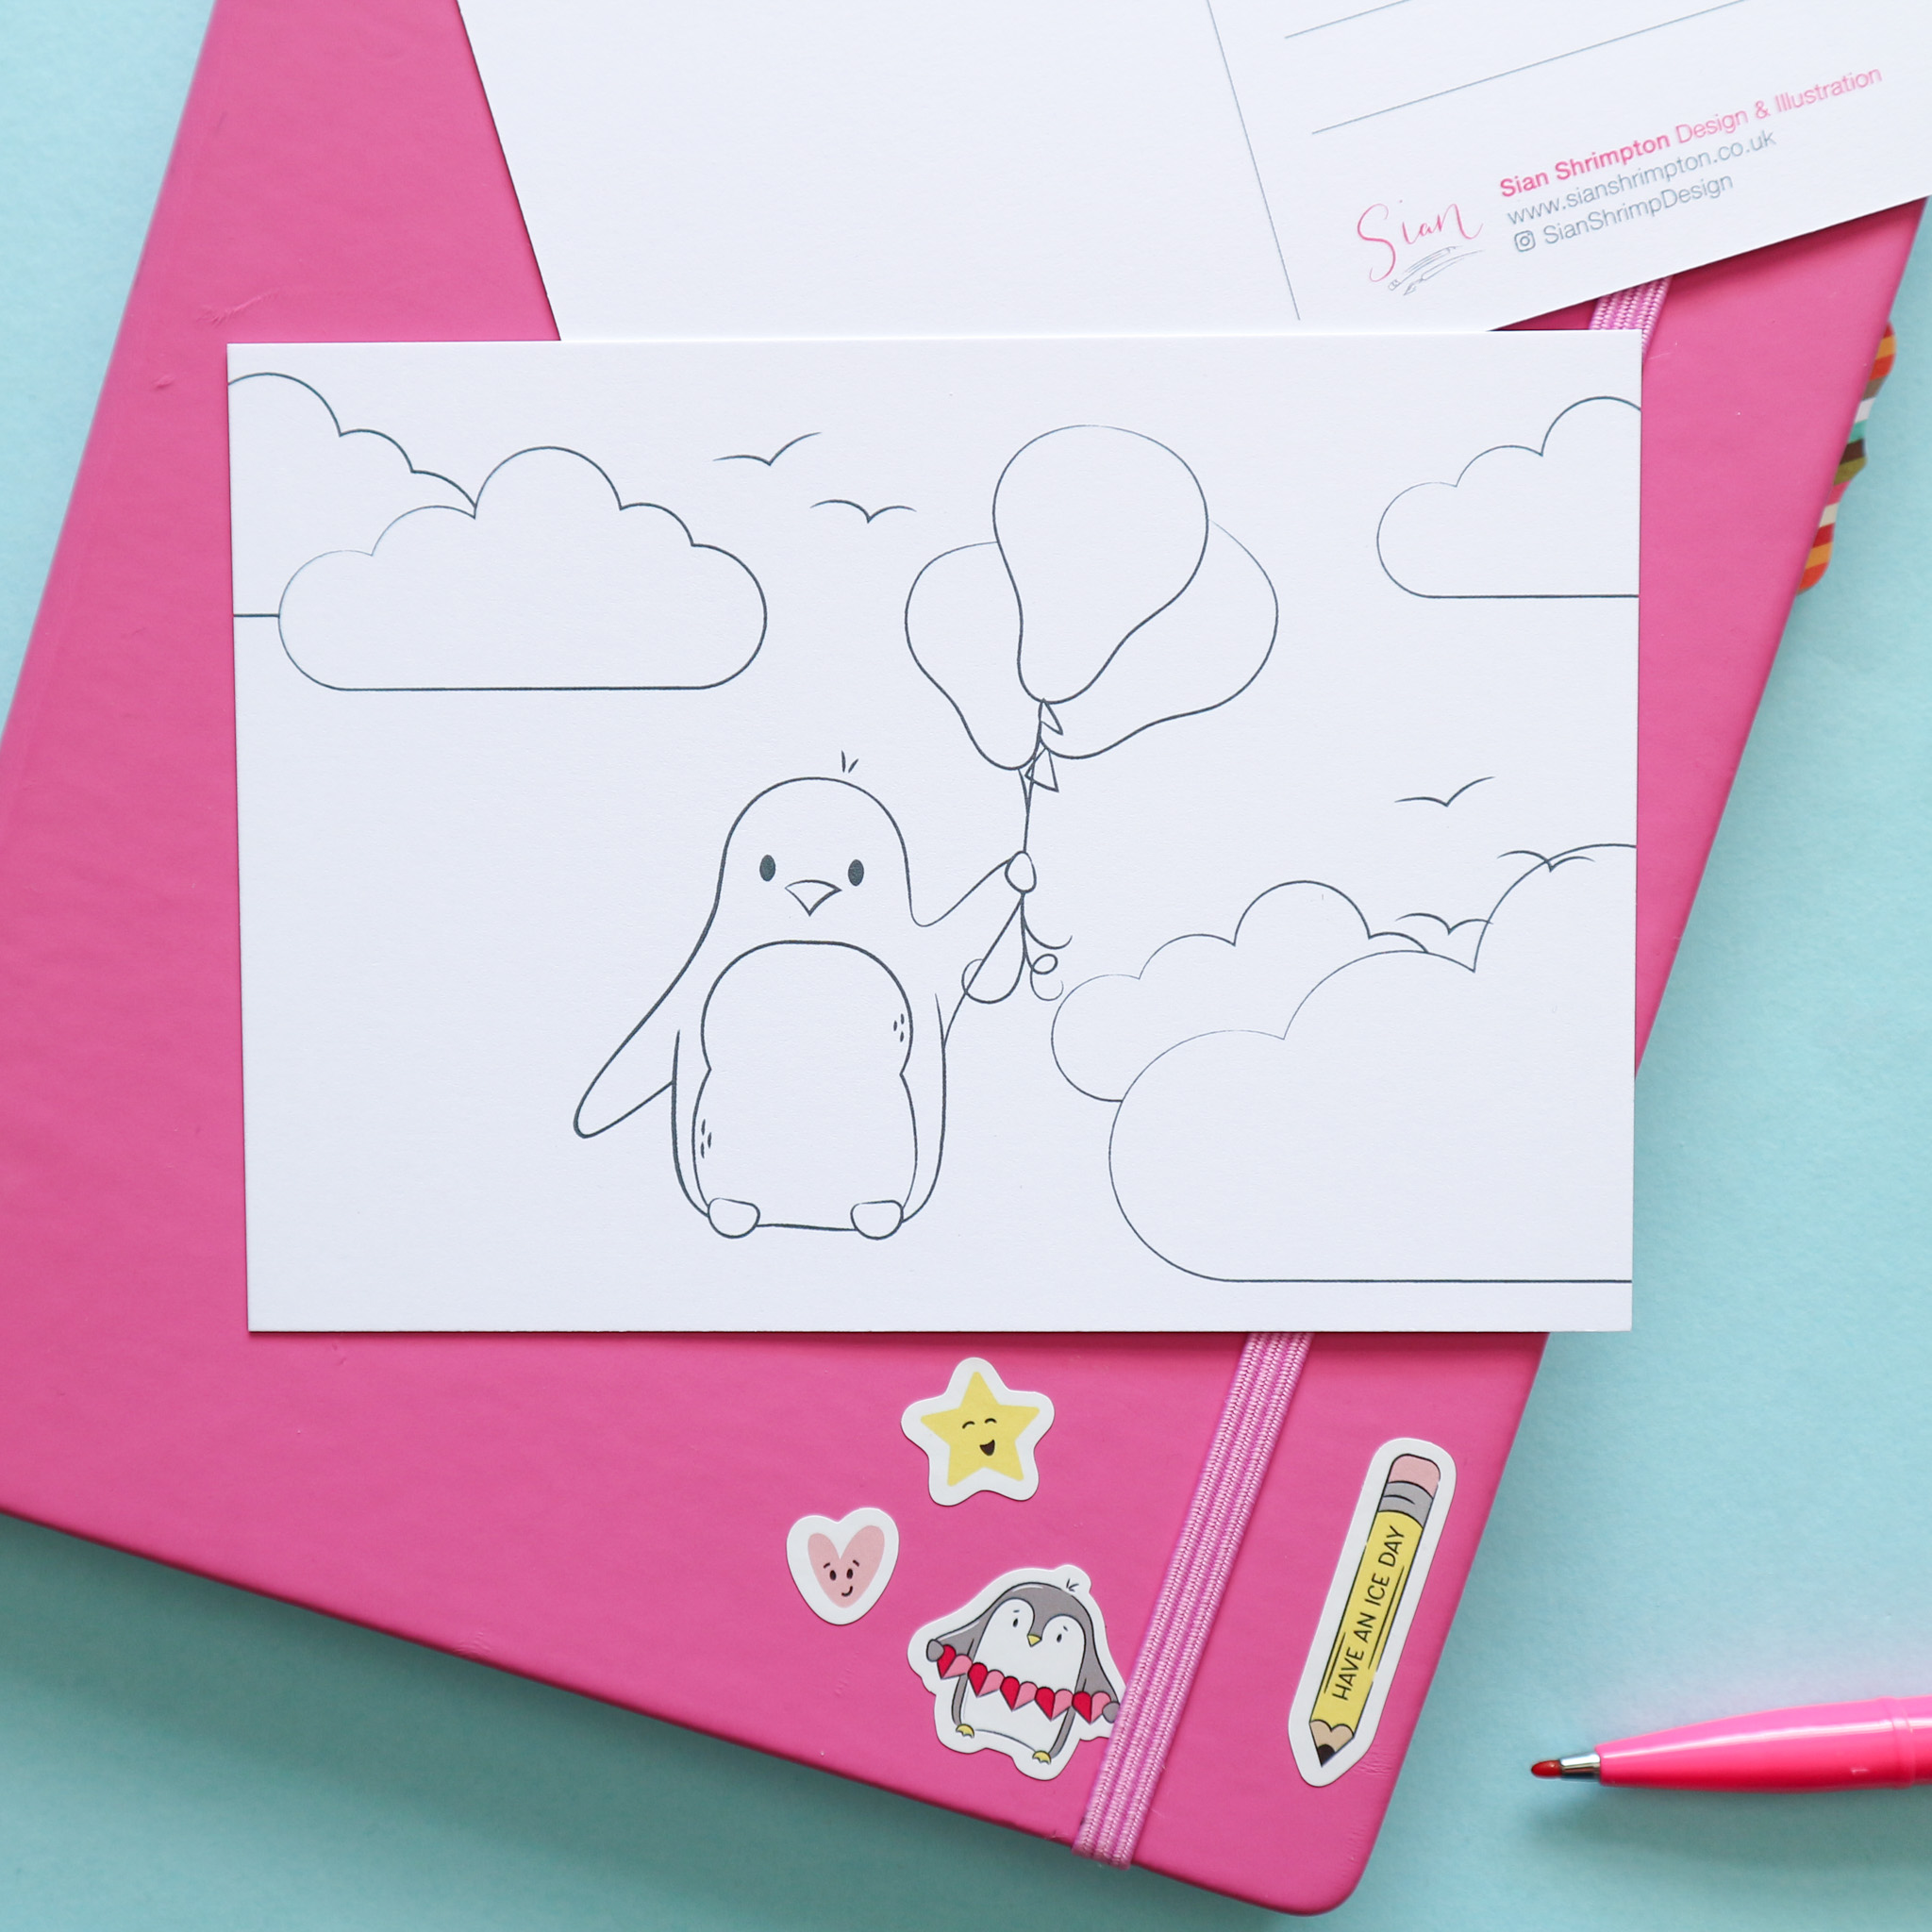 Postcard design showing an illustration which is un-coloured, to be coloured in by you or the recipient. This design shows a penguin floating away with a bunch of balloons.